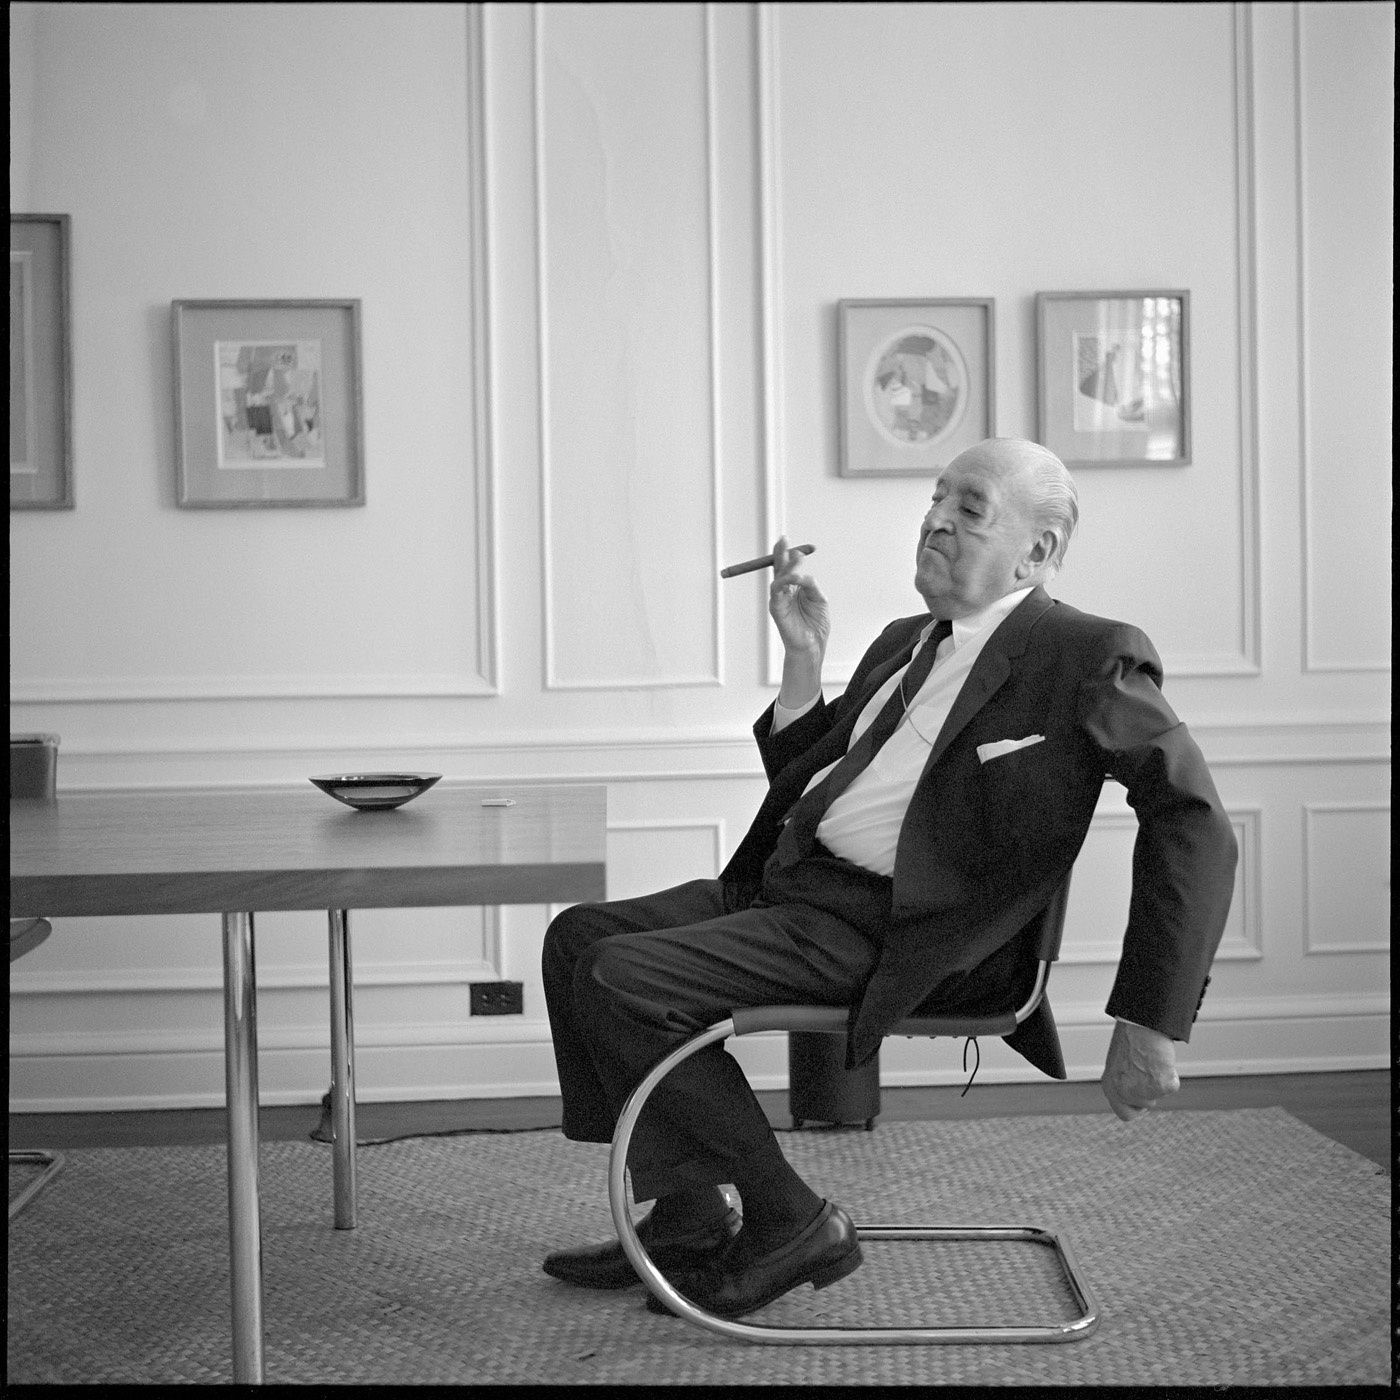 20th Century Chair Design: Ludwig Mies Van Der Rohe